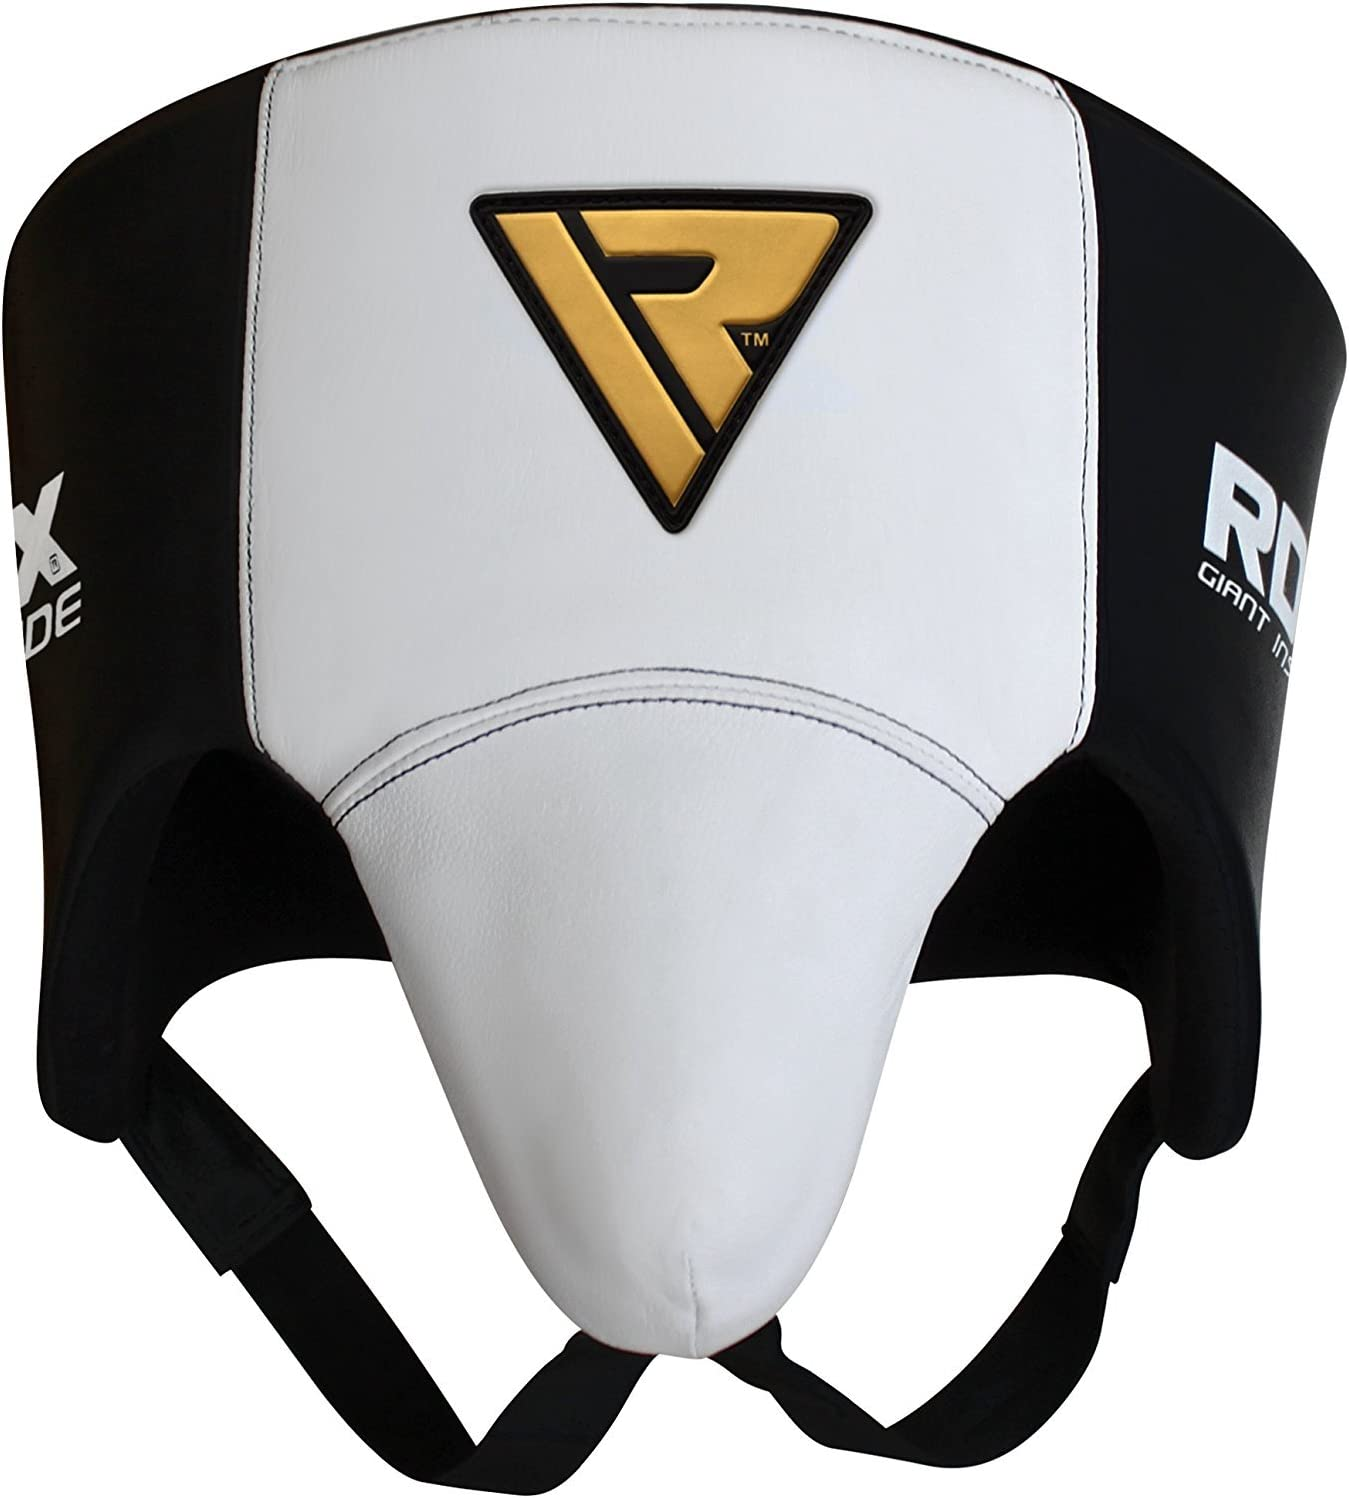 Martial Arts Taekwondo RDX Groin Guard for Boxing Cow Hide Leather Abdo Gear for Muay Thai Karate Abdominal Protector for Men Jock Strap for Kickboxing MMA Training BJJ Sparring /& Fighting